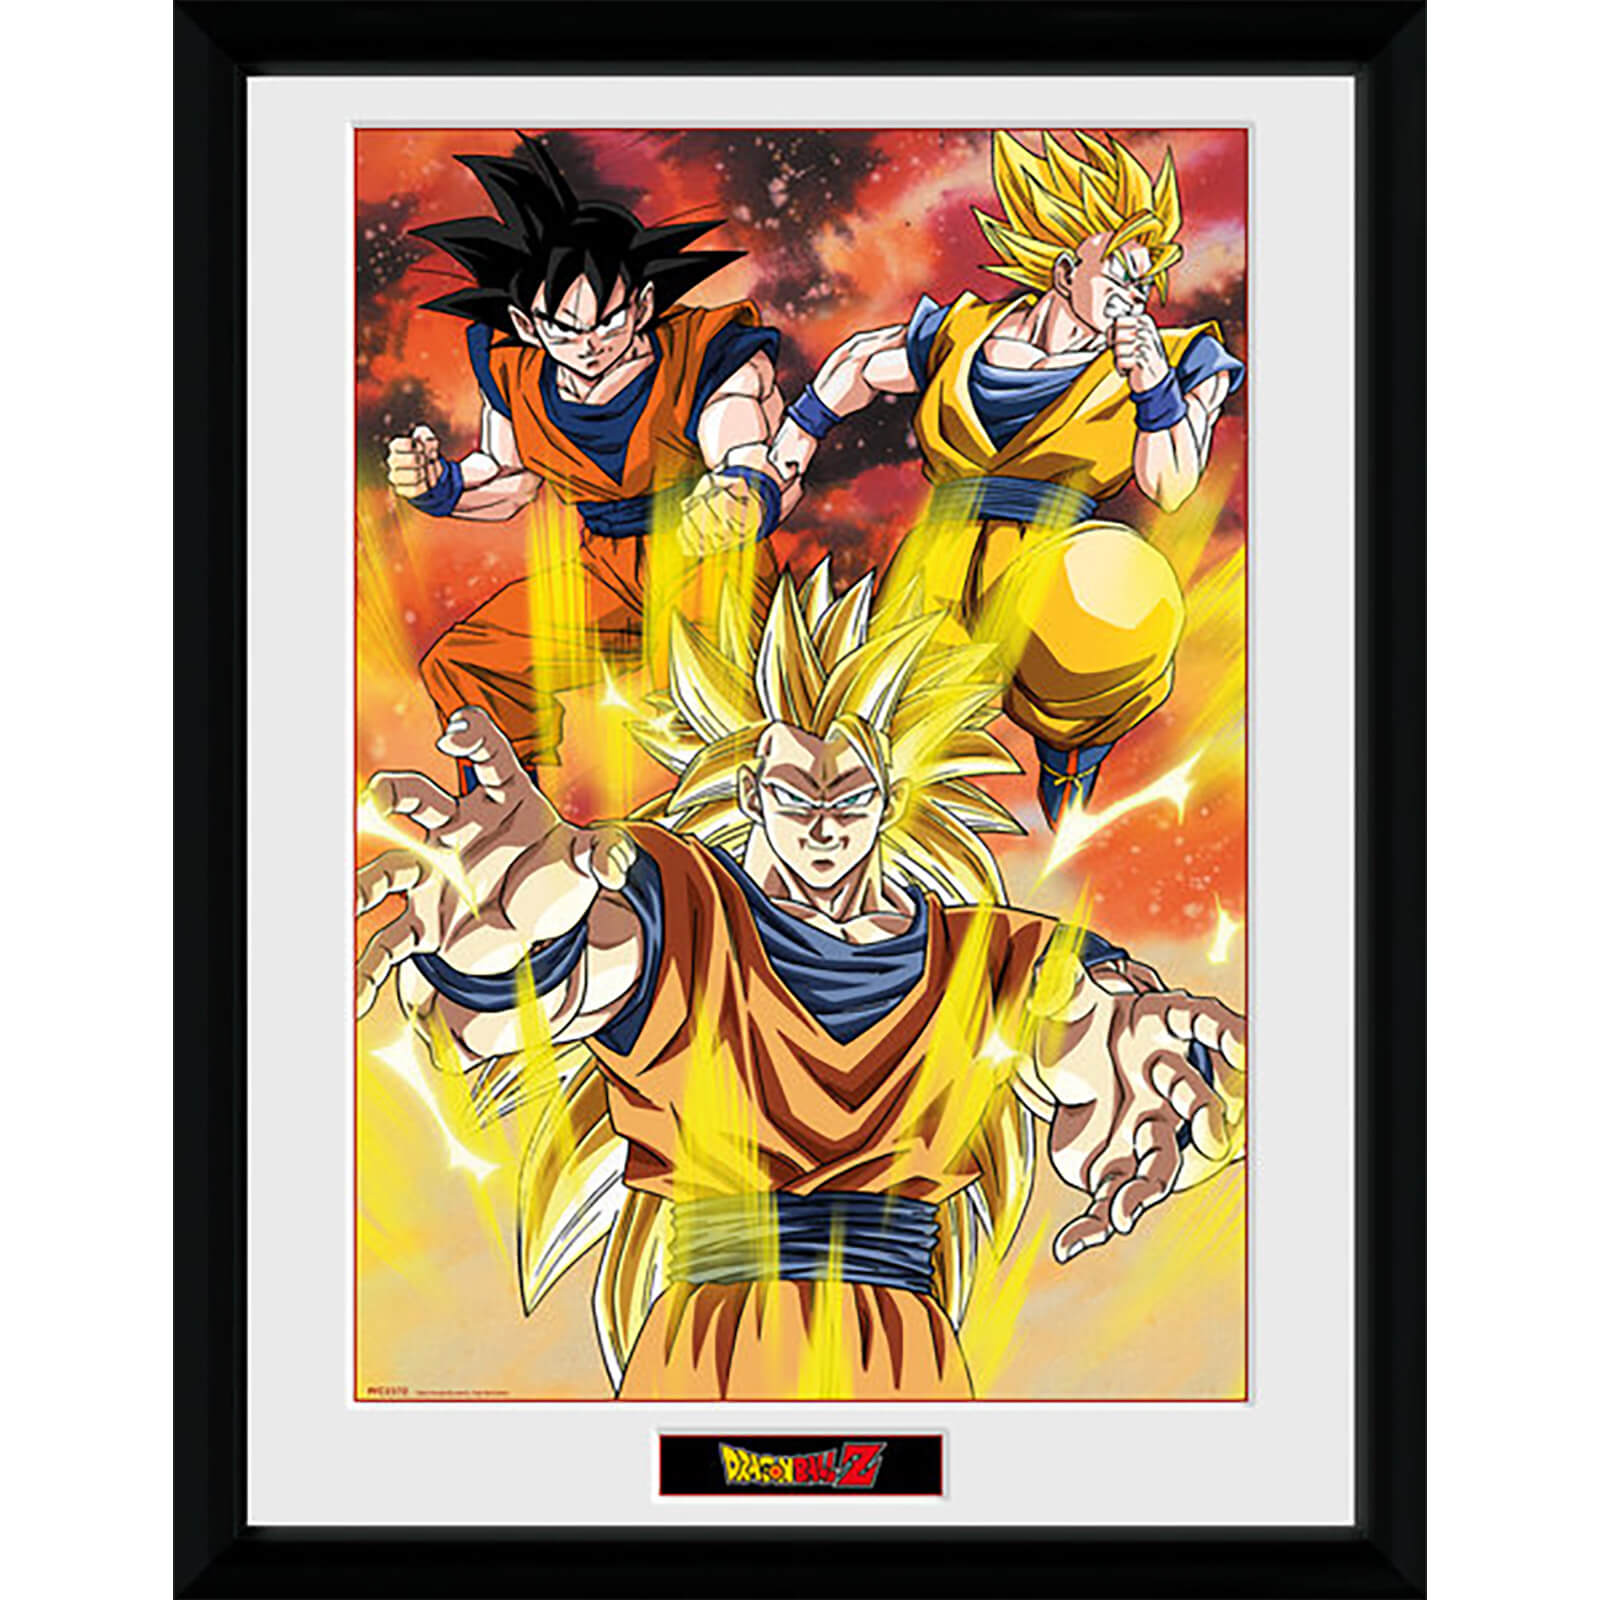 Dragon Ball Z 3 Gokus - 16 x 12 Inches Framed Photograph